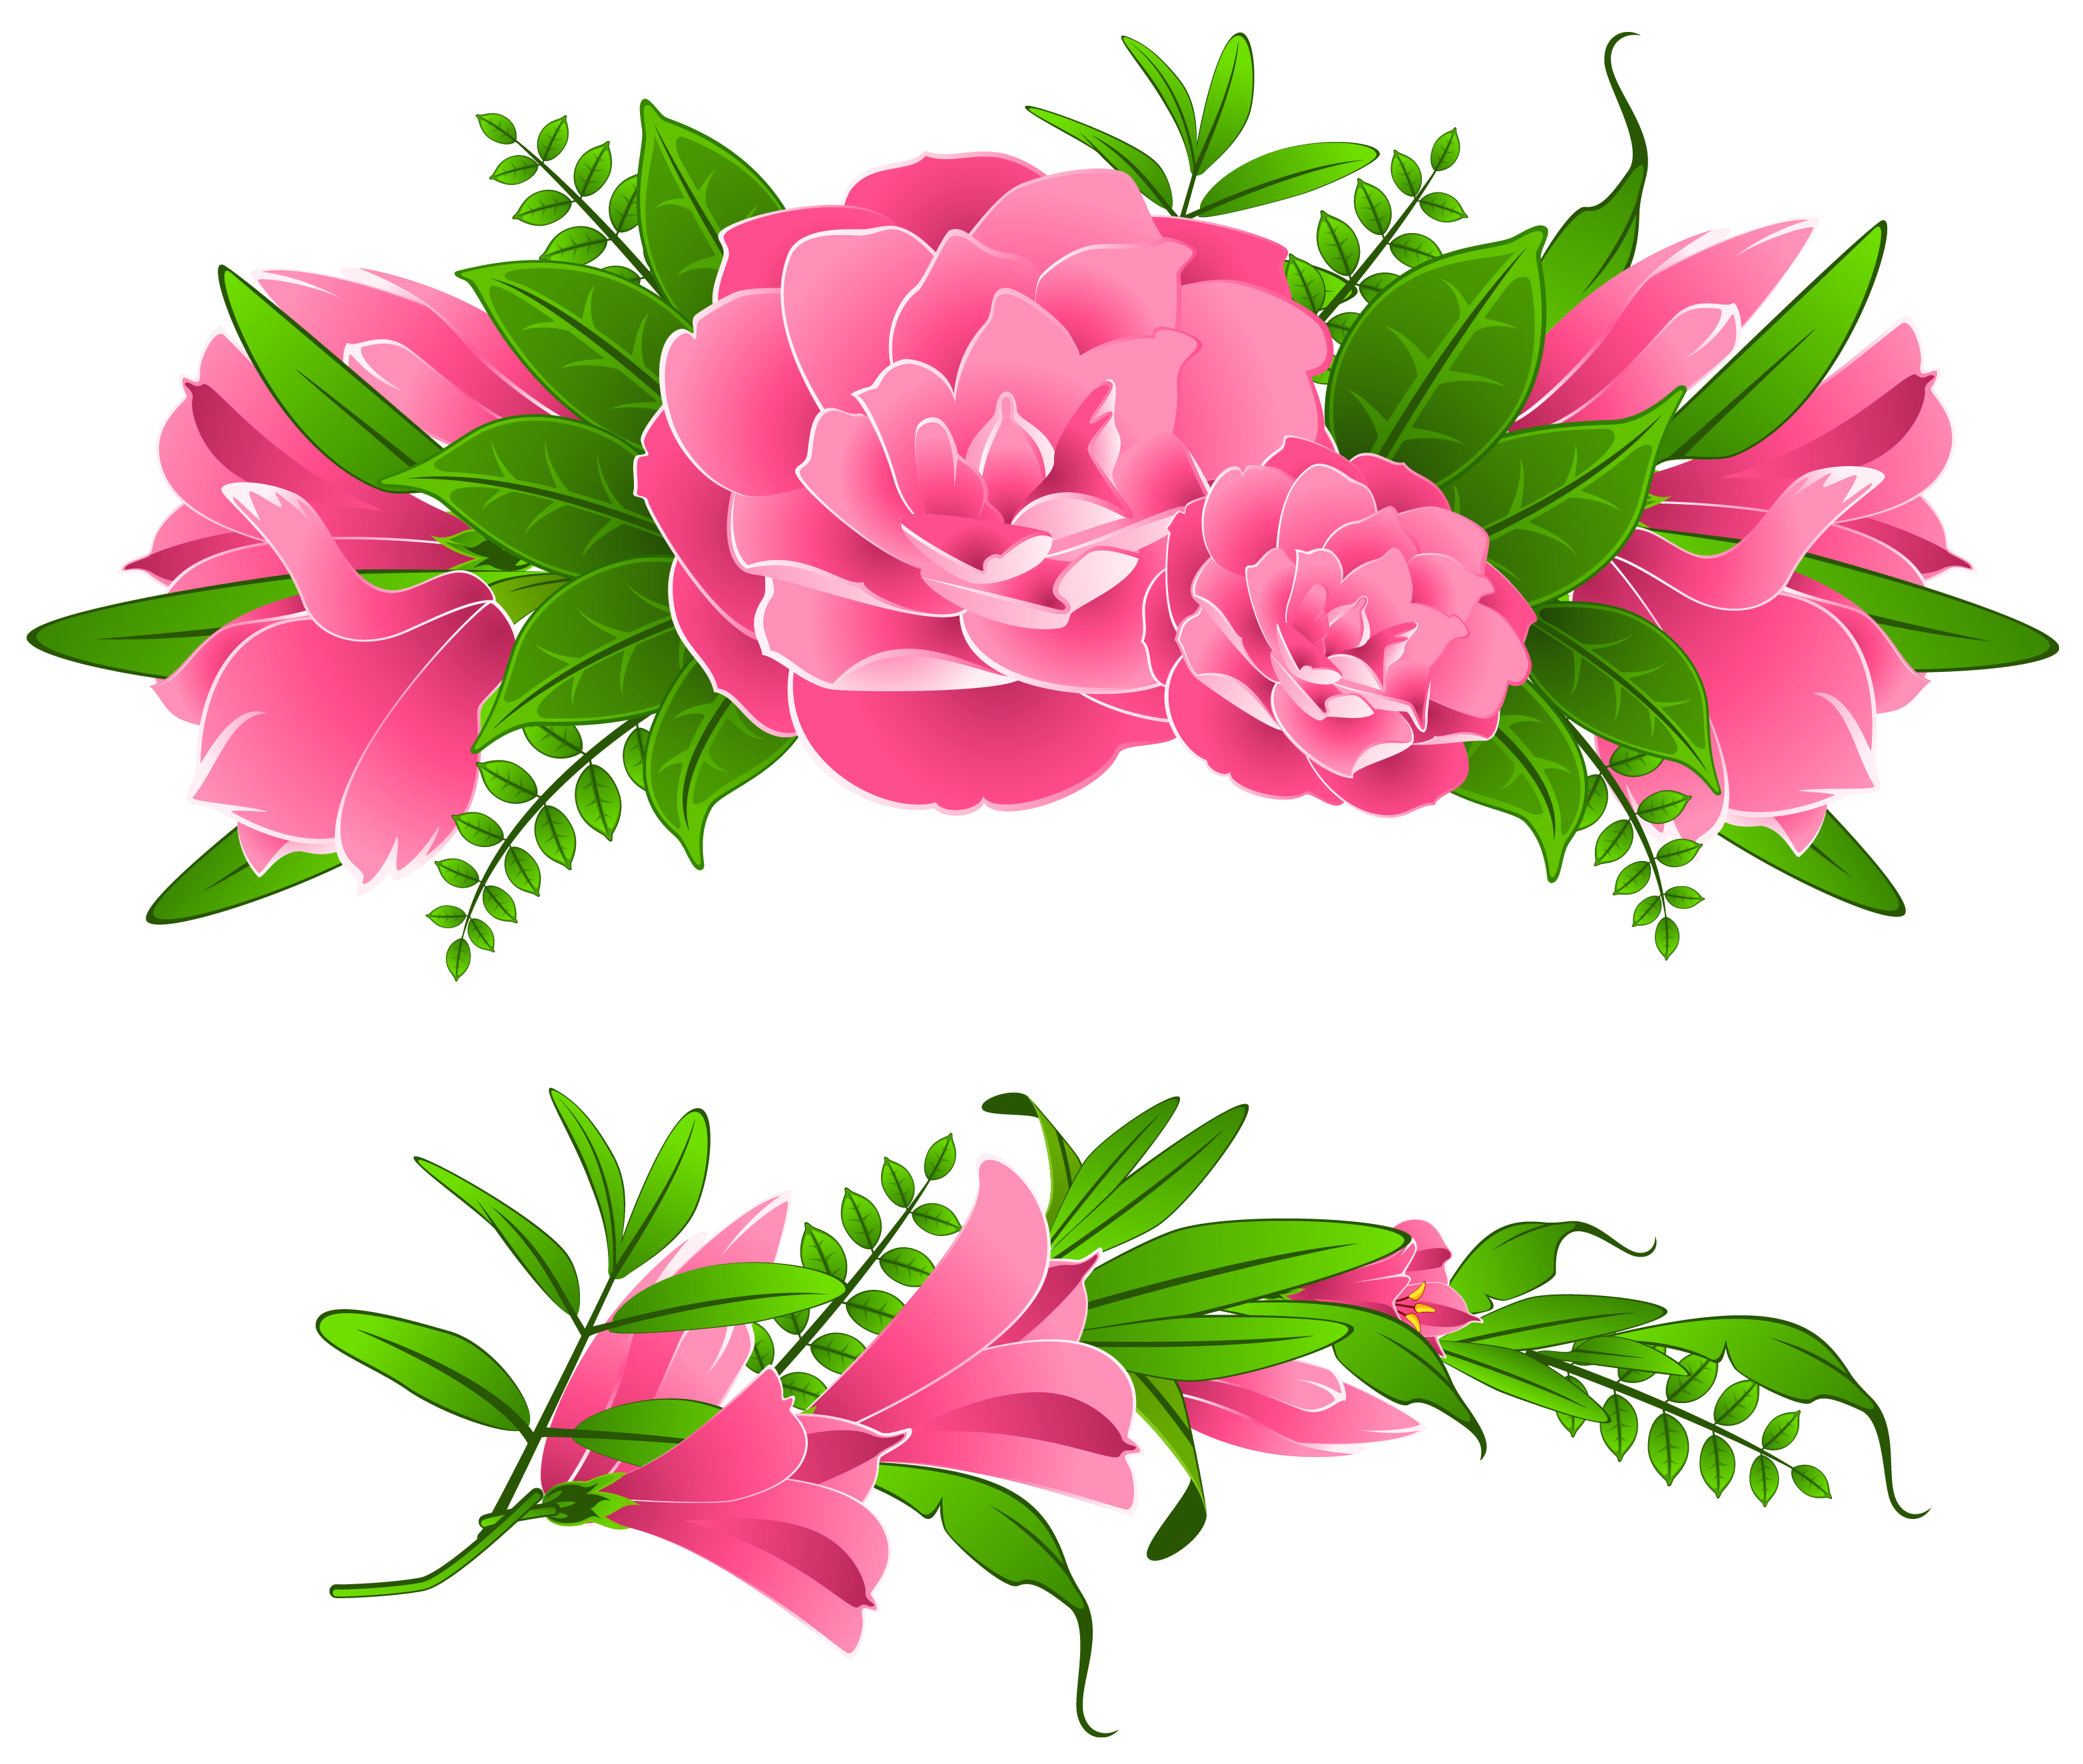 Pink Flowers Decorative Element PNG Clipart.